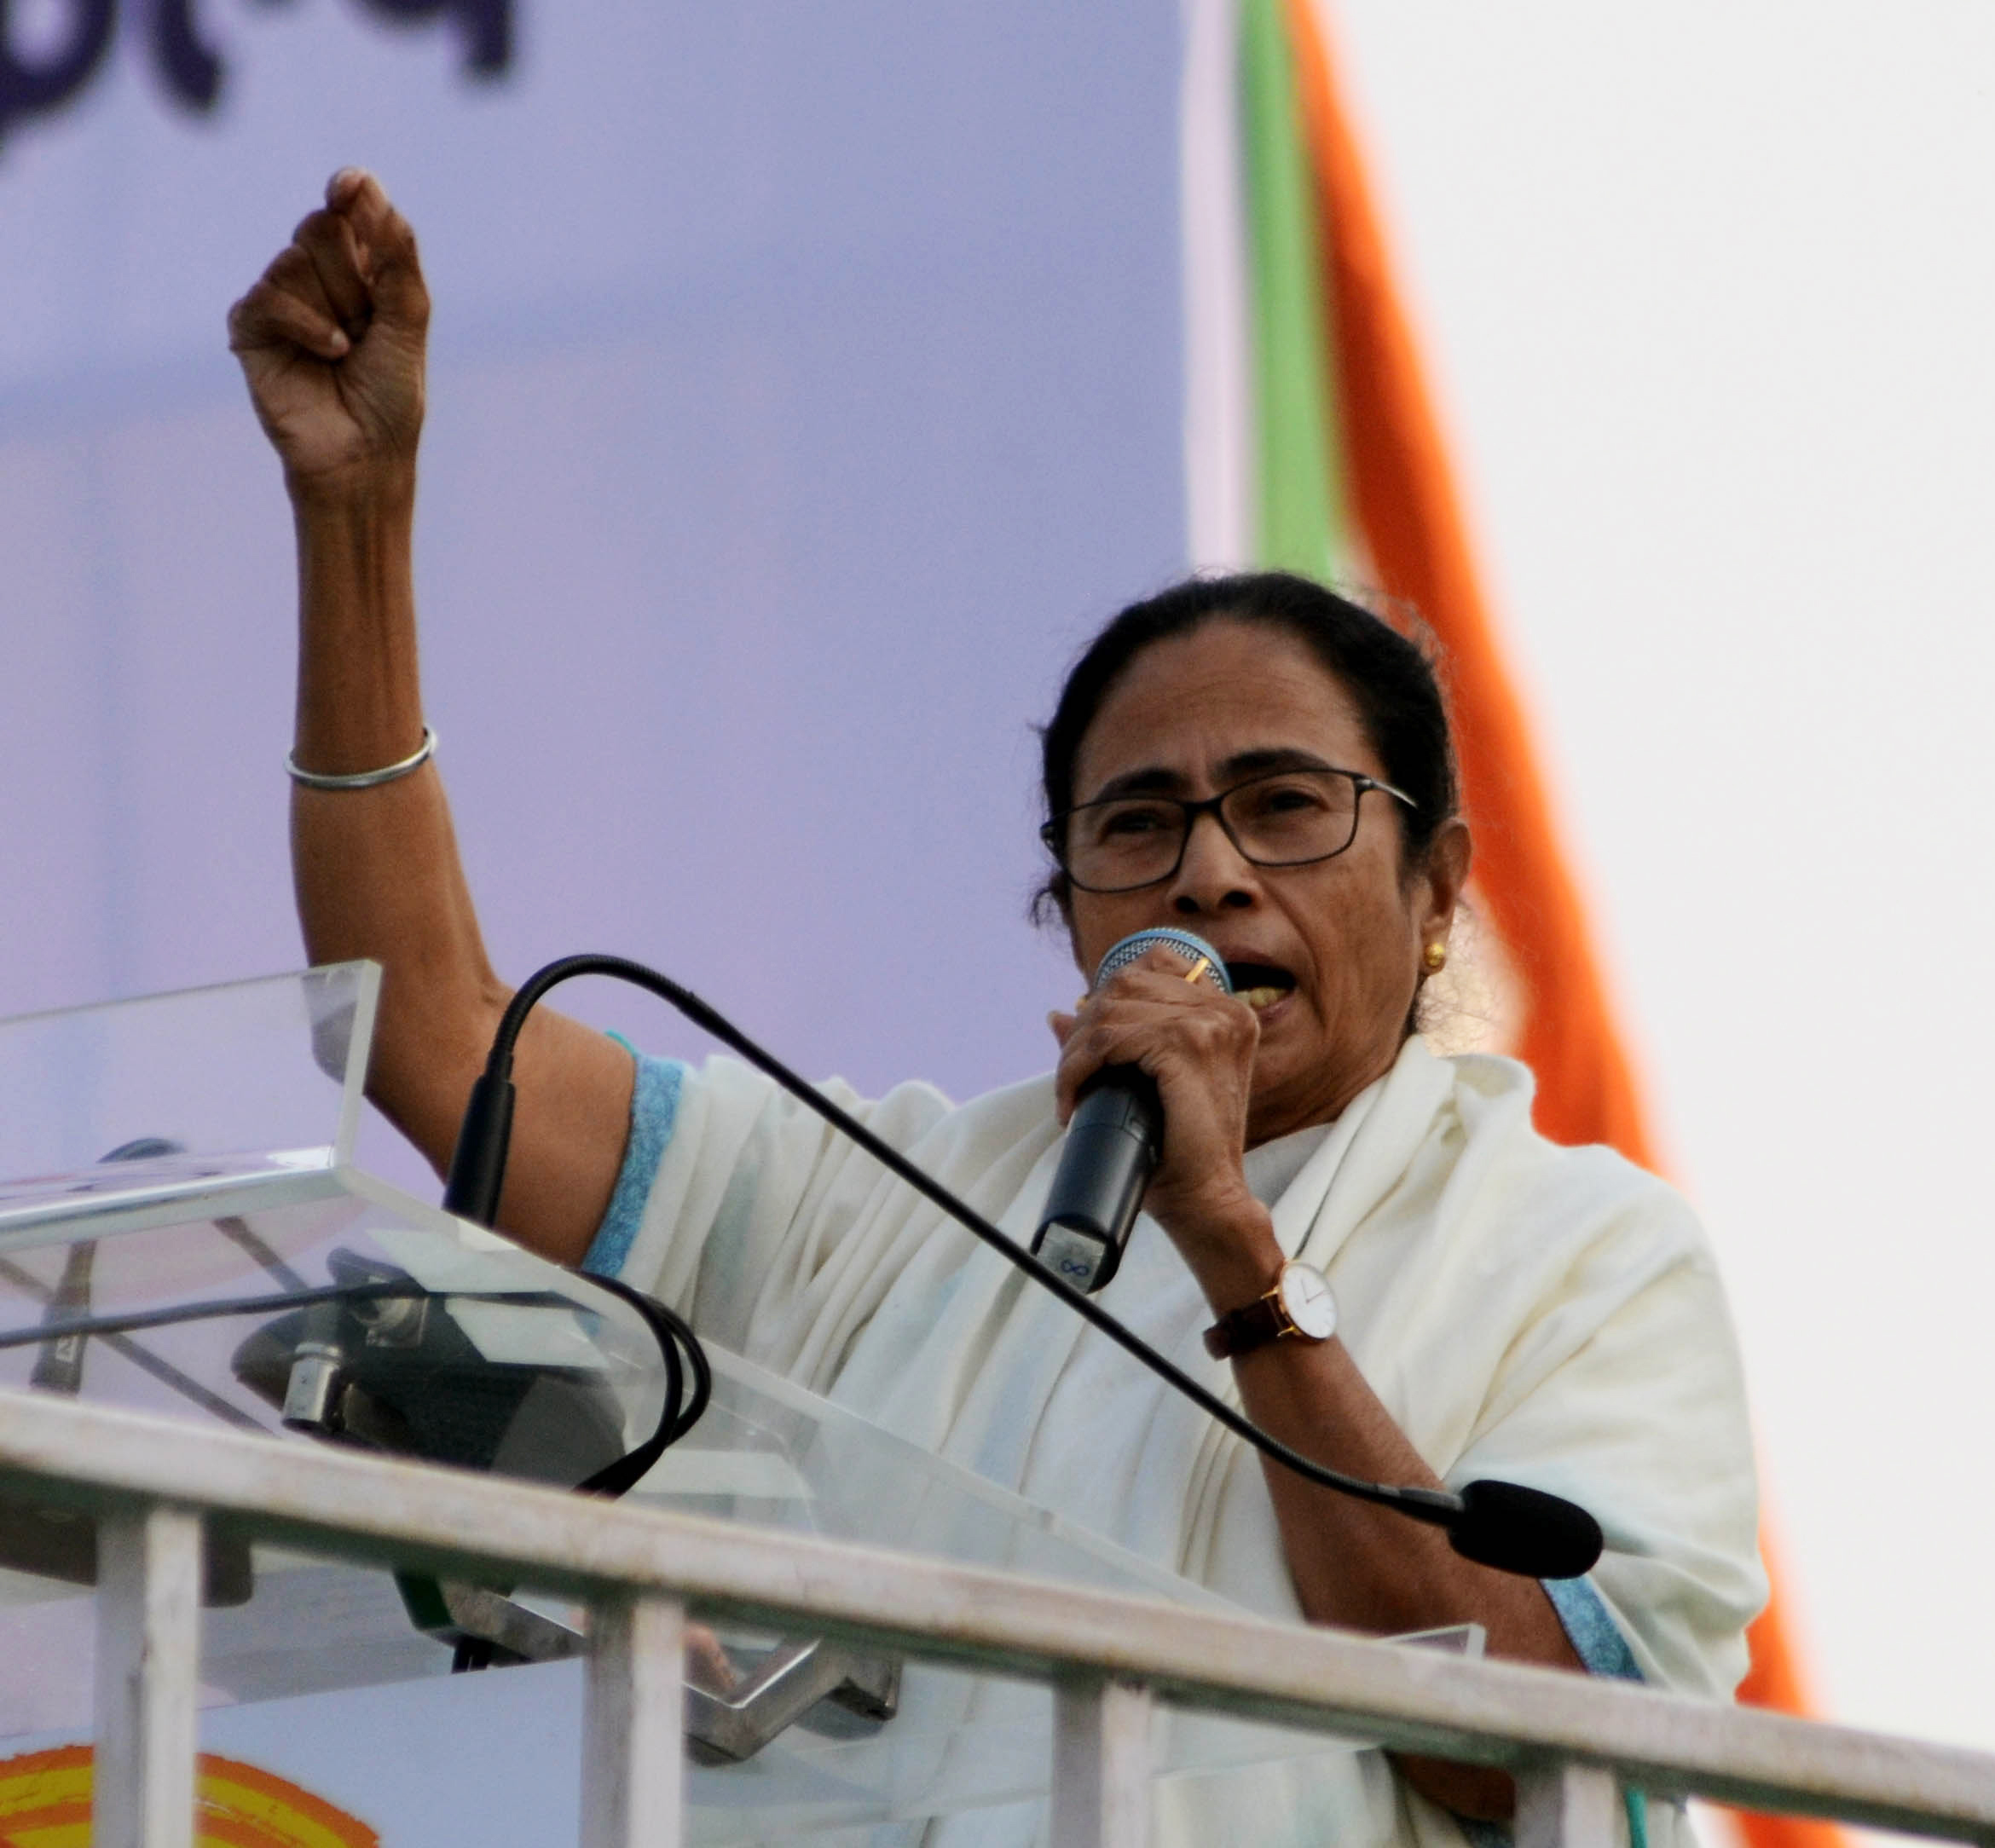 Mamata Banerjee showing overconfidence with her new tactics